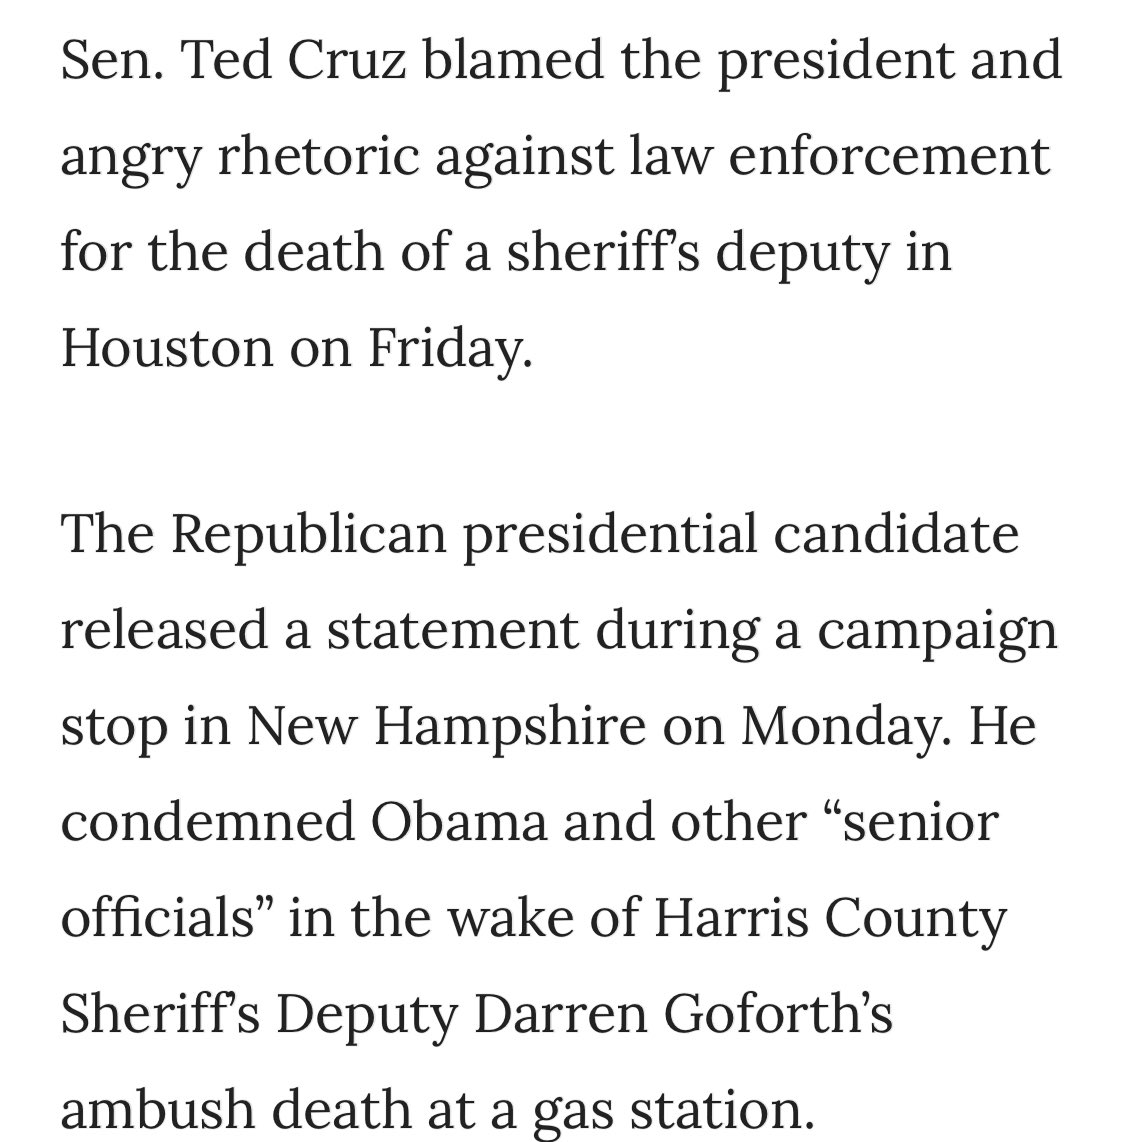 Remember when Ted Cruz blamed Obama's rhetoric when a Black man killed a cop?  Does the fact that Republicans encouraged the Great White Riot mean they are responsible for an officer's death and why do you want #TedCruzKilledaCop to trend?